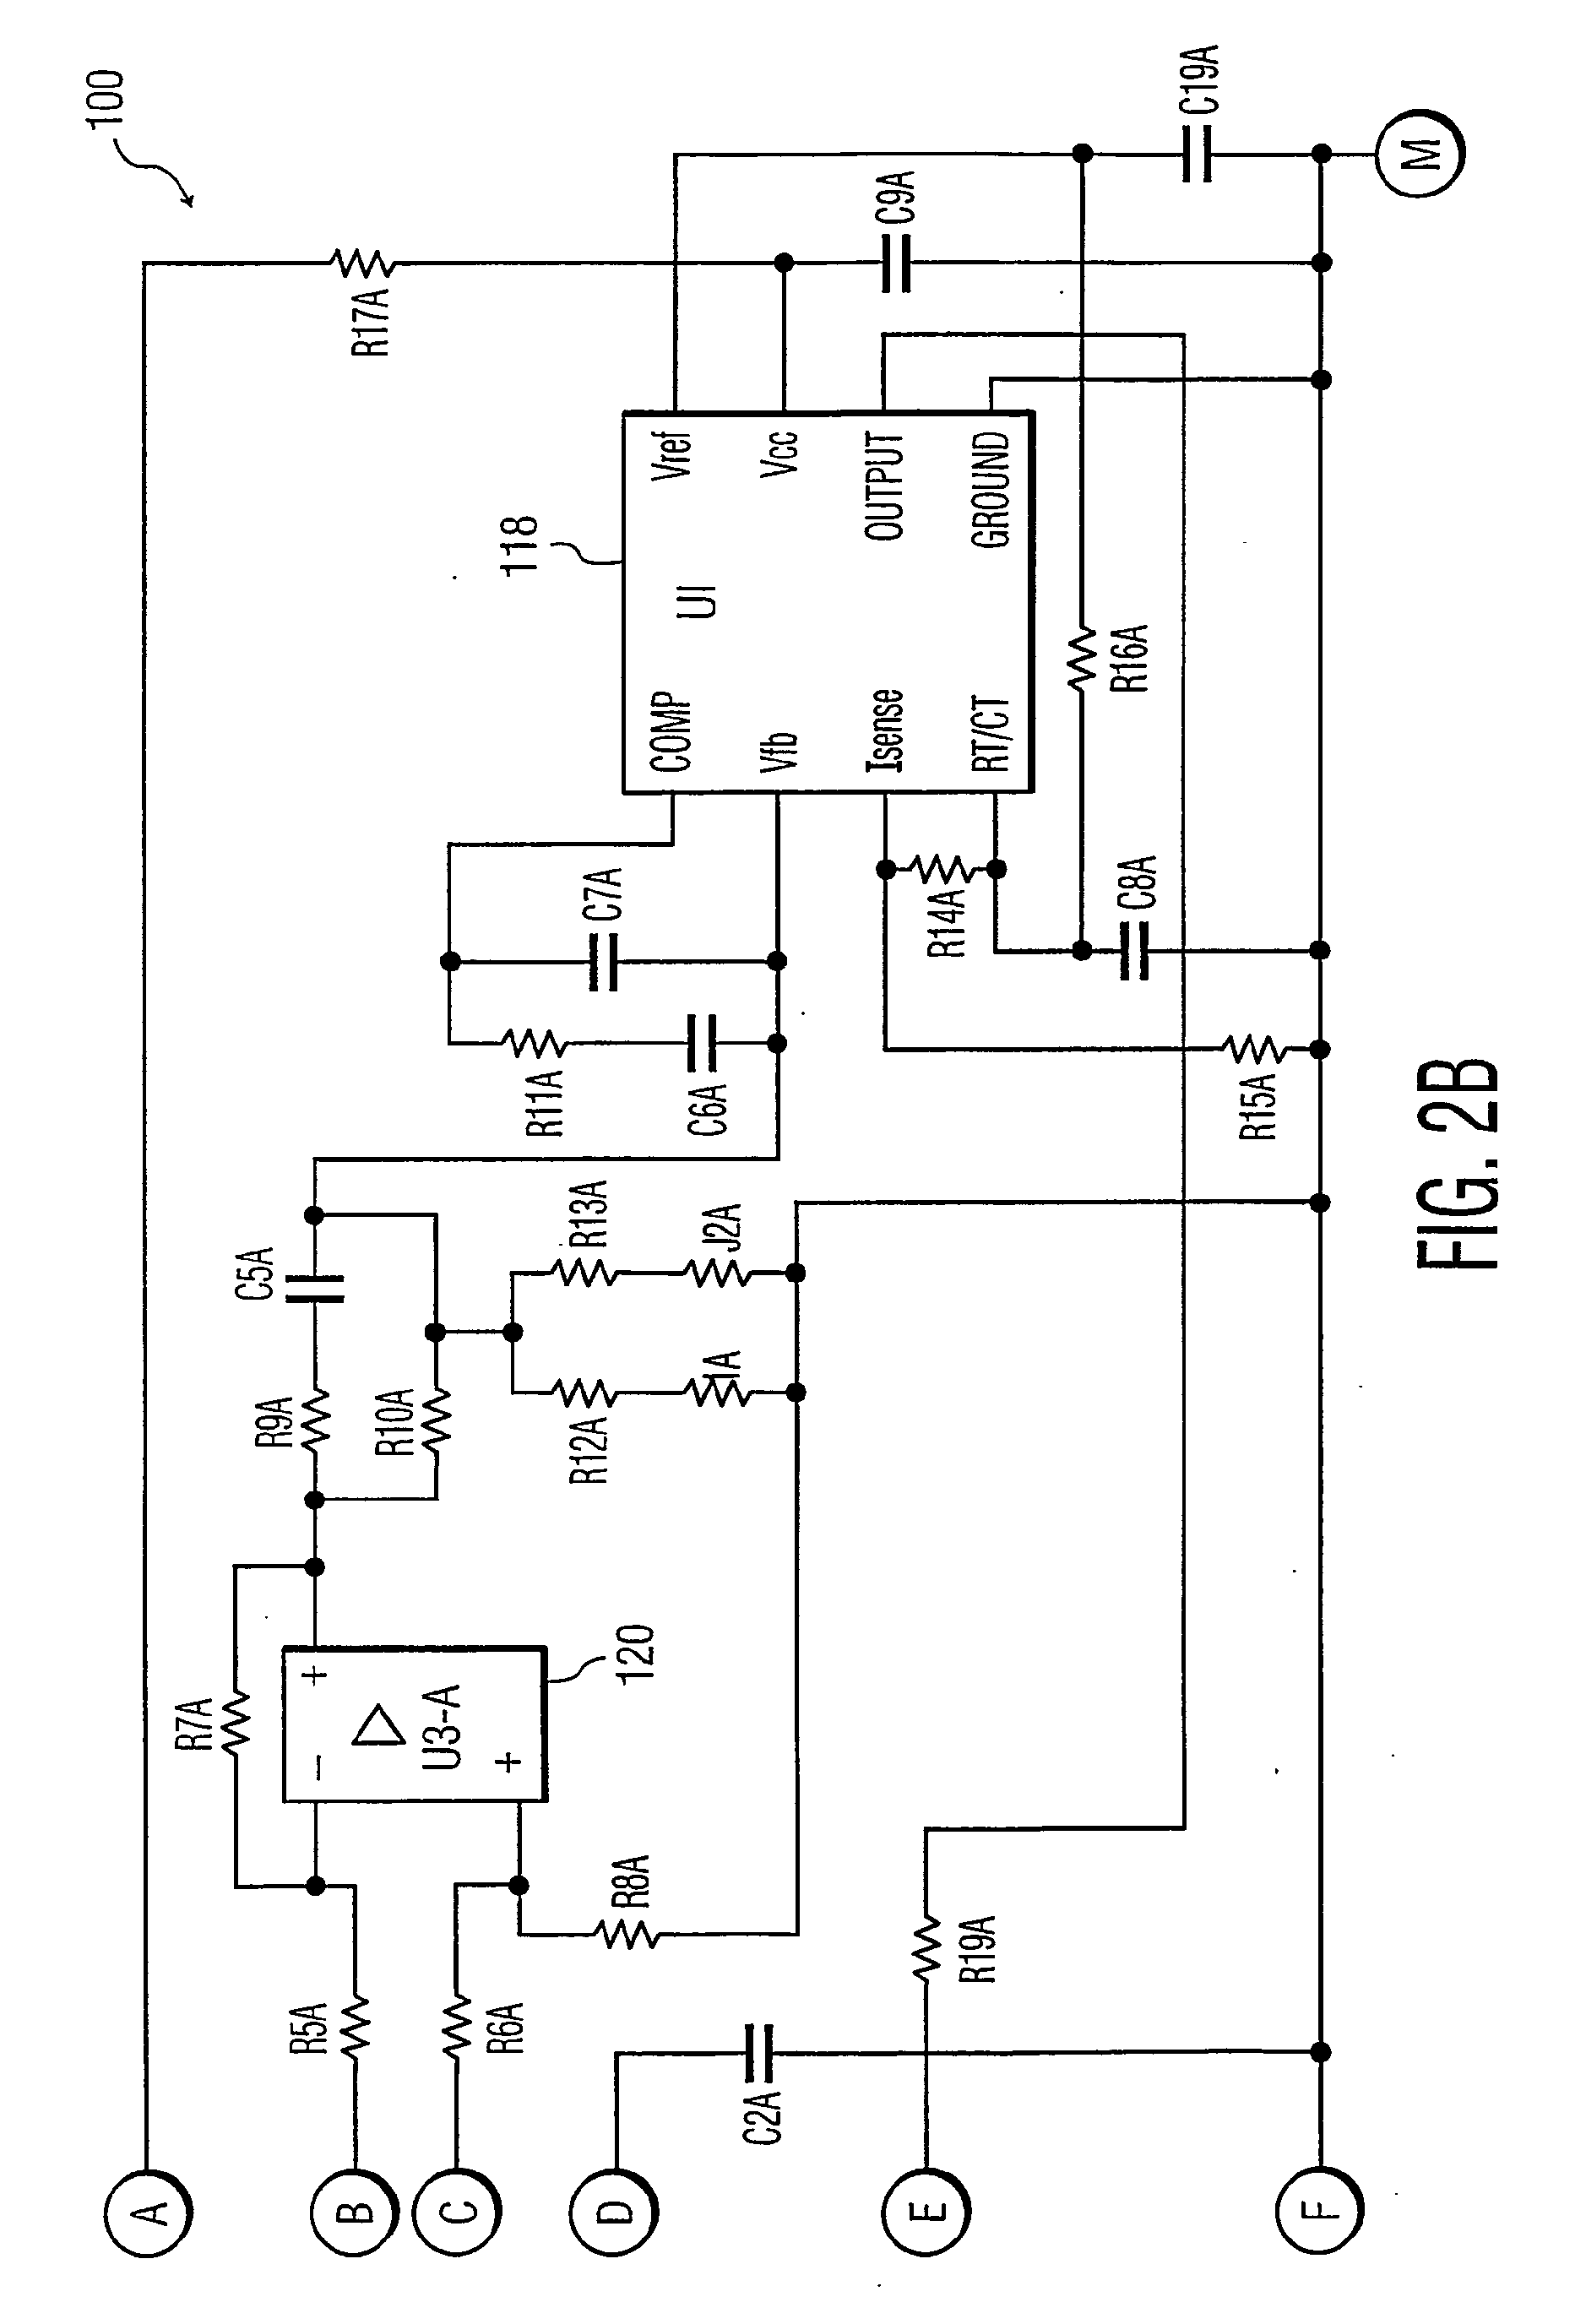 LED DRIVER CIRCUIT WITH PWM OUTPUT - Patent 1459599